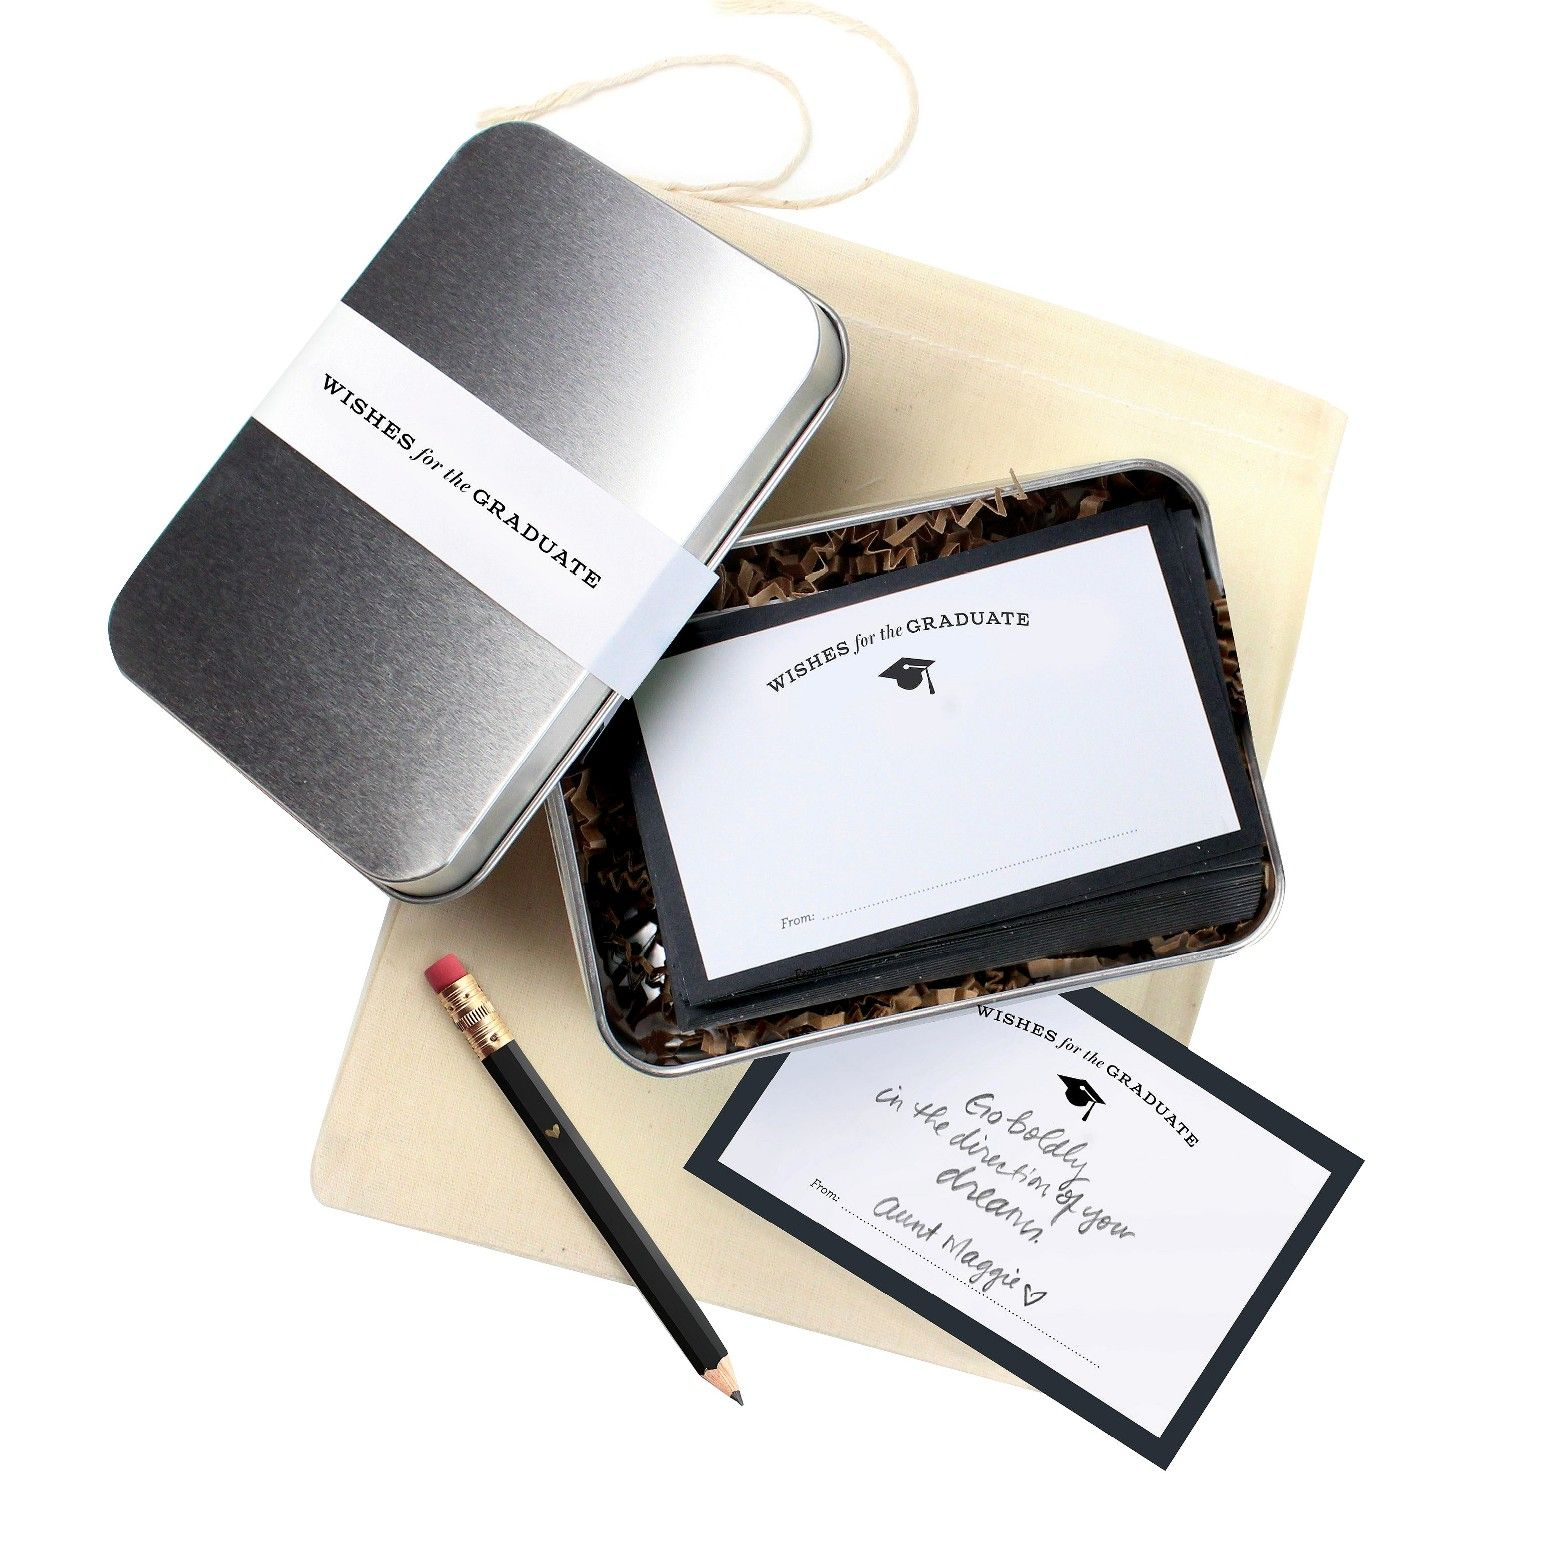 24ct wishes for the graduate gift tin tin gifts party